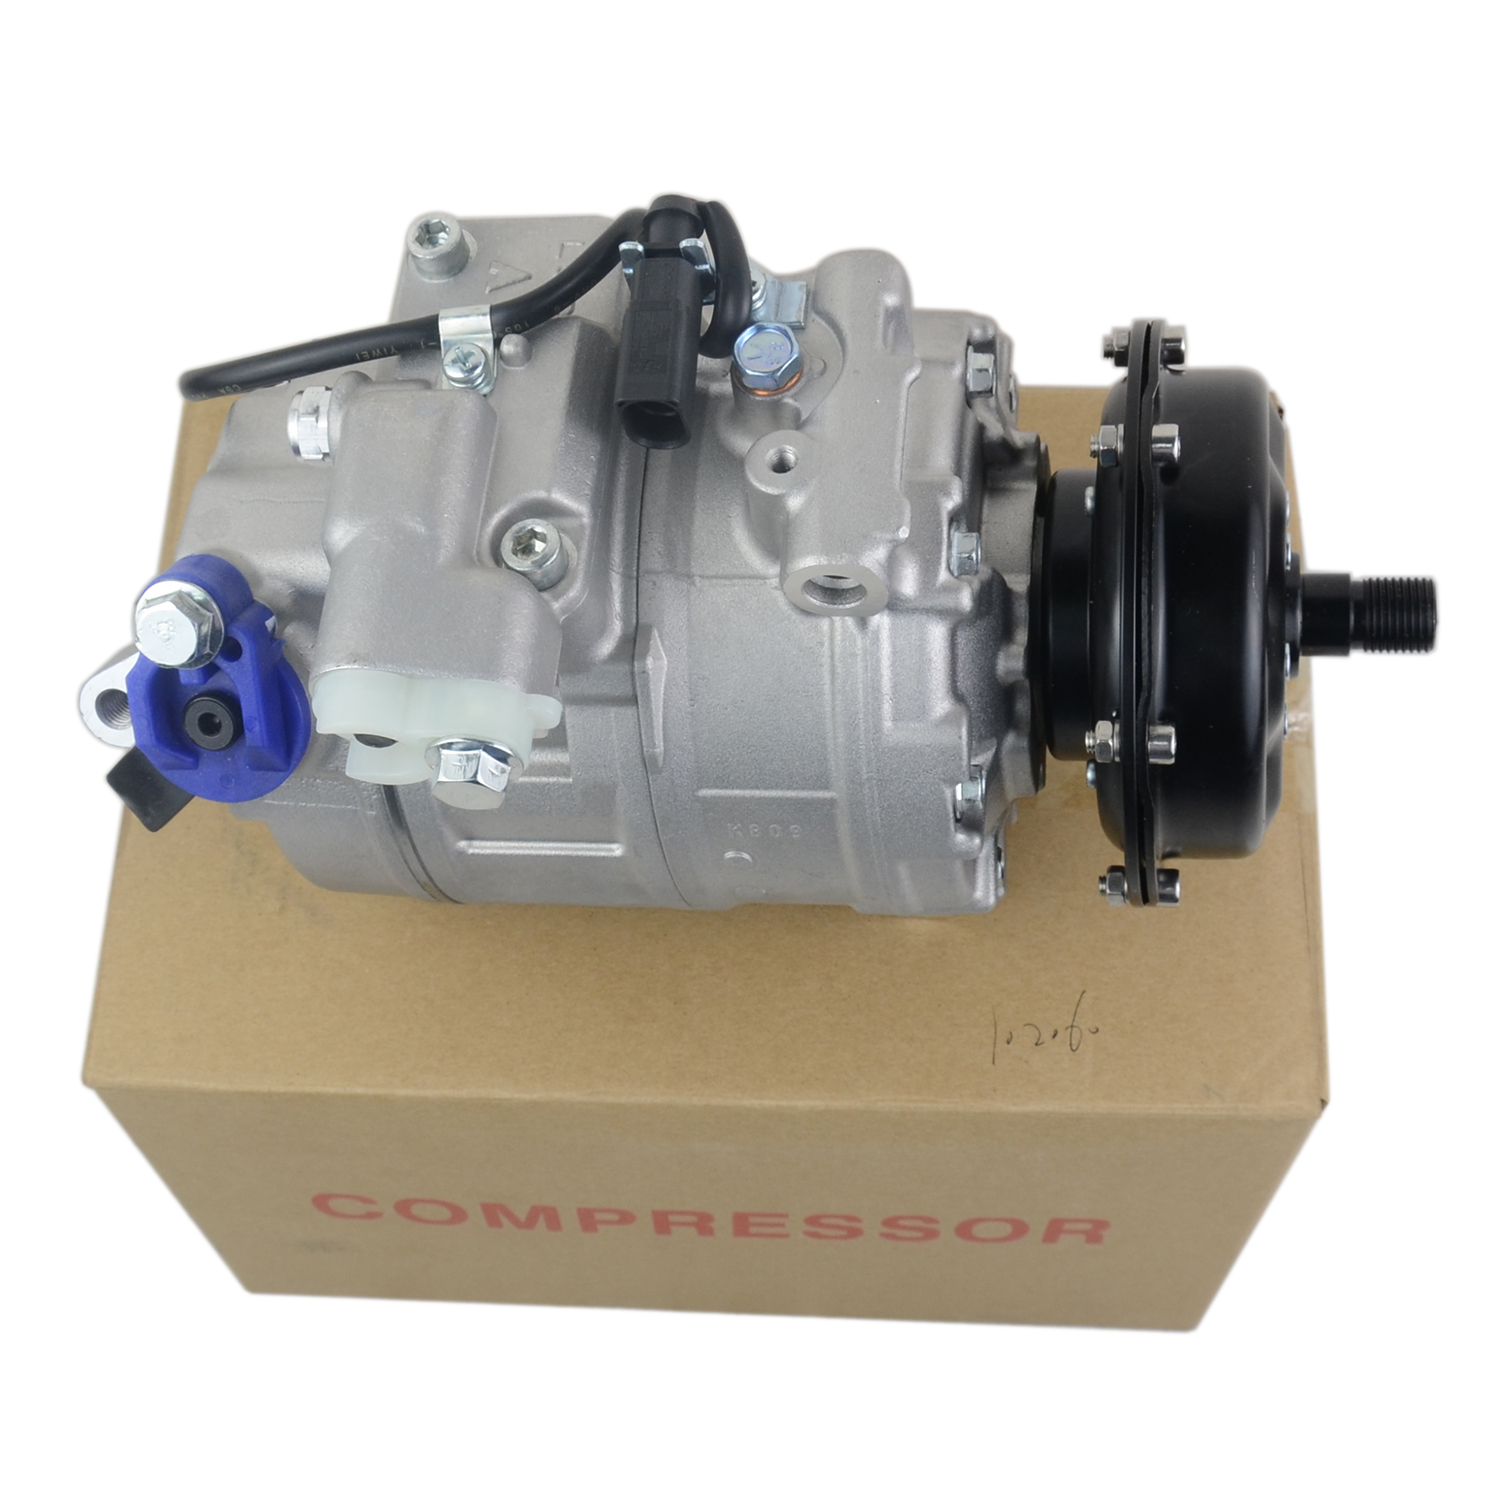 AP01 Air conditioning compressor For <font><b>VW</b></font> <font><b>Multivan</b></font> V Touareg Transporter V <font><b>T5</b></font> 2.5 TDI 3D0820805 3D0820805B 3D0820805E 3D0820805G image